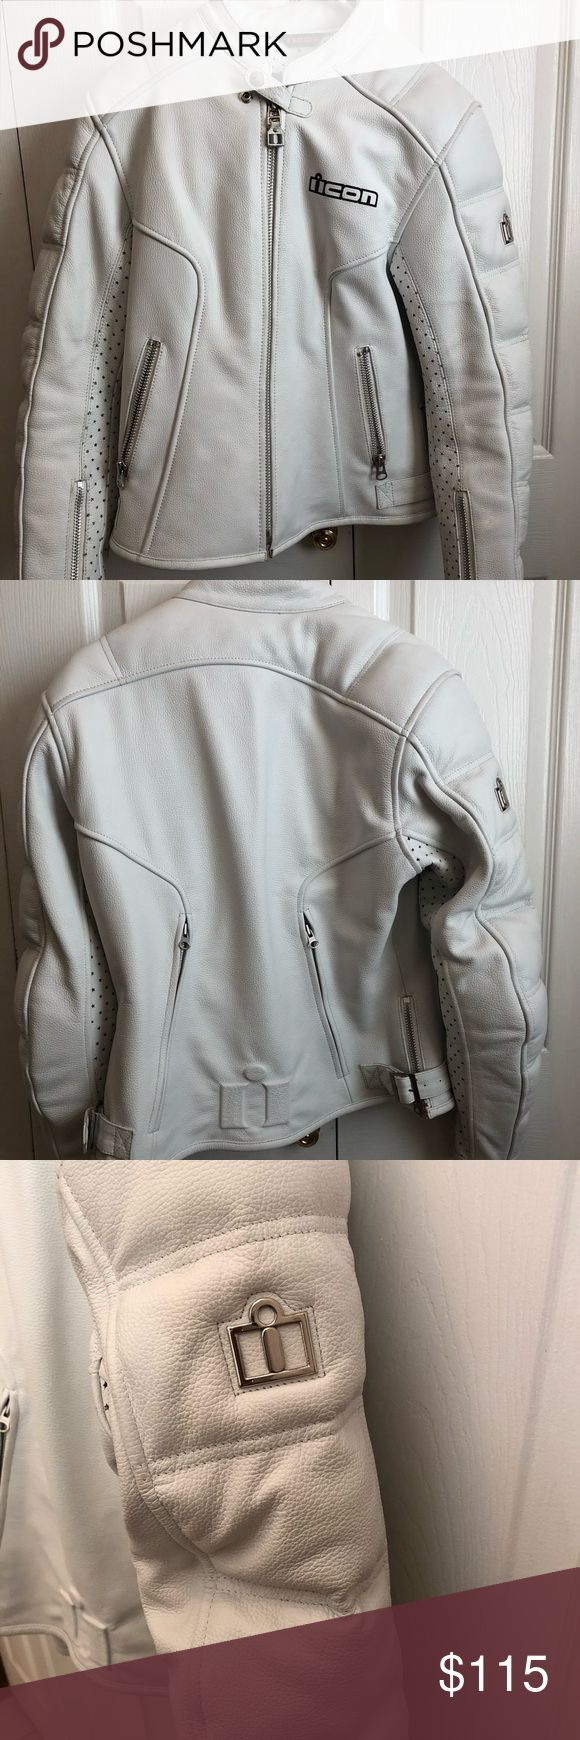 Women's leather motorcycle jacket Women's icon leather motorcycle jacket. Size small. Worn a few times and has been hanging in my closet for a few years. It's time someone puts it back on a bike. ICON Jackets & Coats